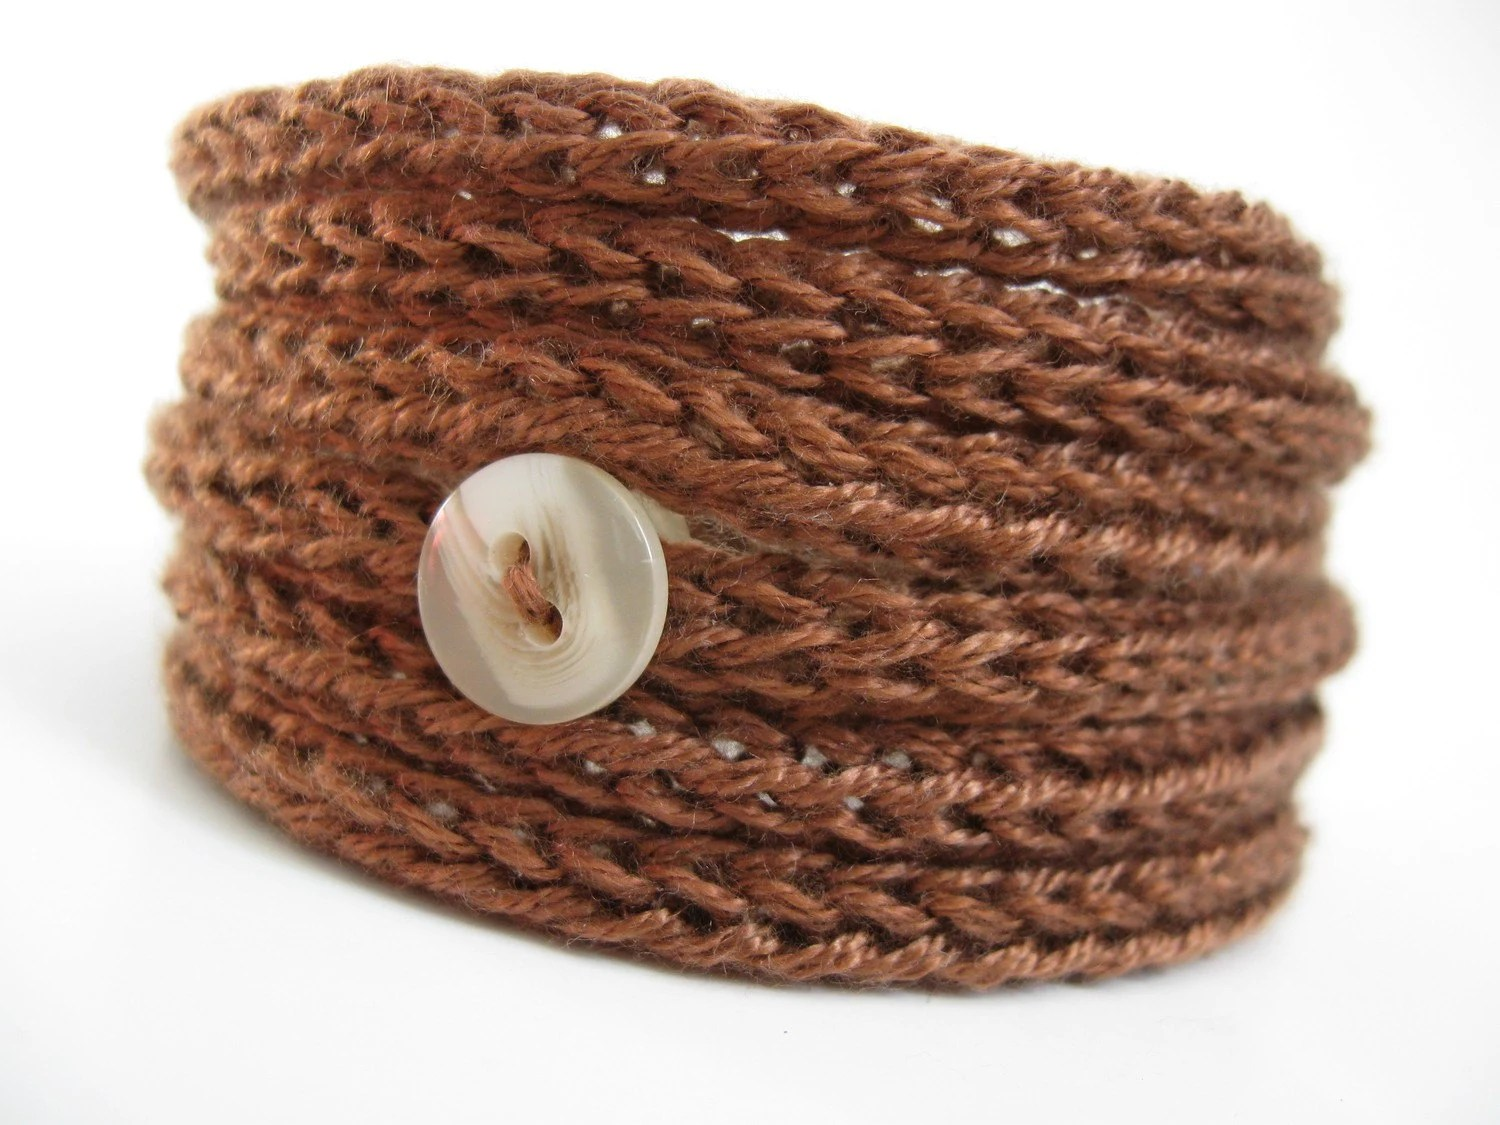 Knitted Cord Bracelet - Brown Shades - 4 colors available: Chocolate, Coffee, Caramel, Brown and Black - AnnyMay